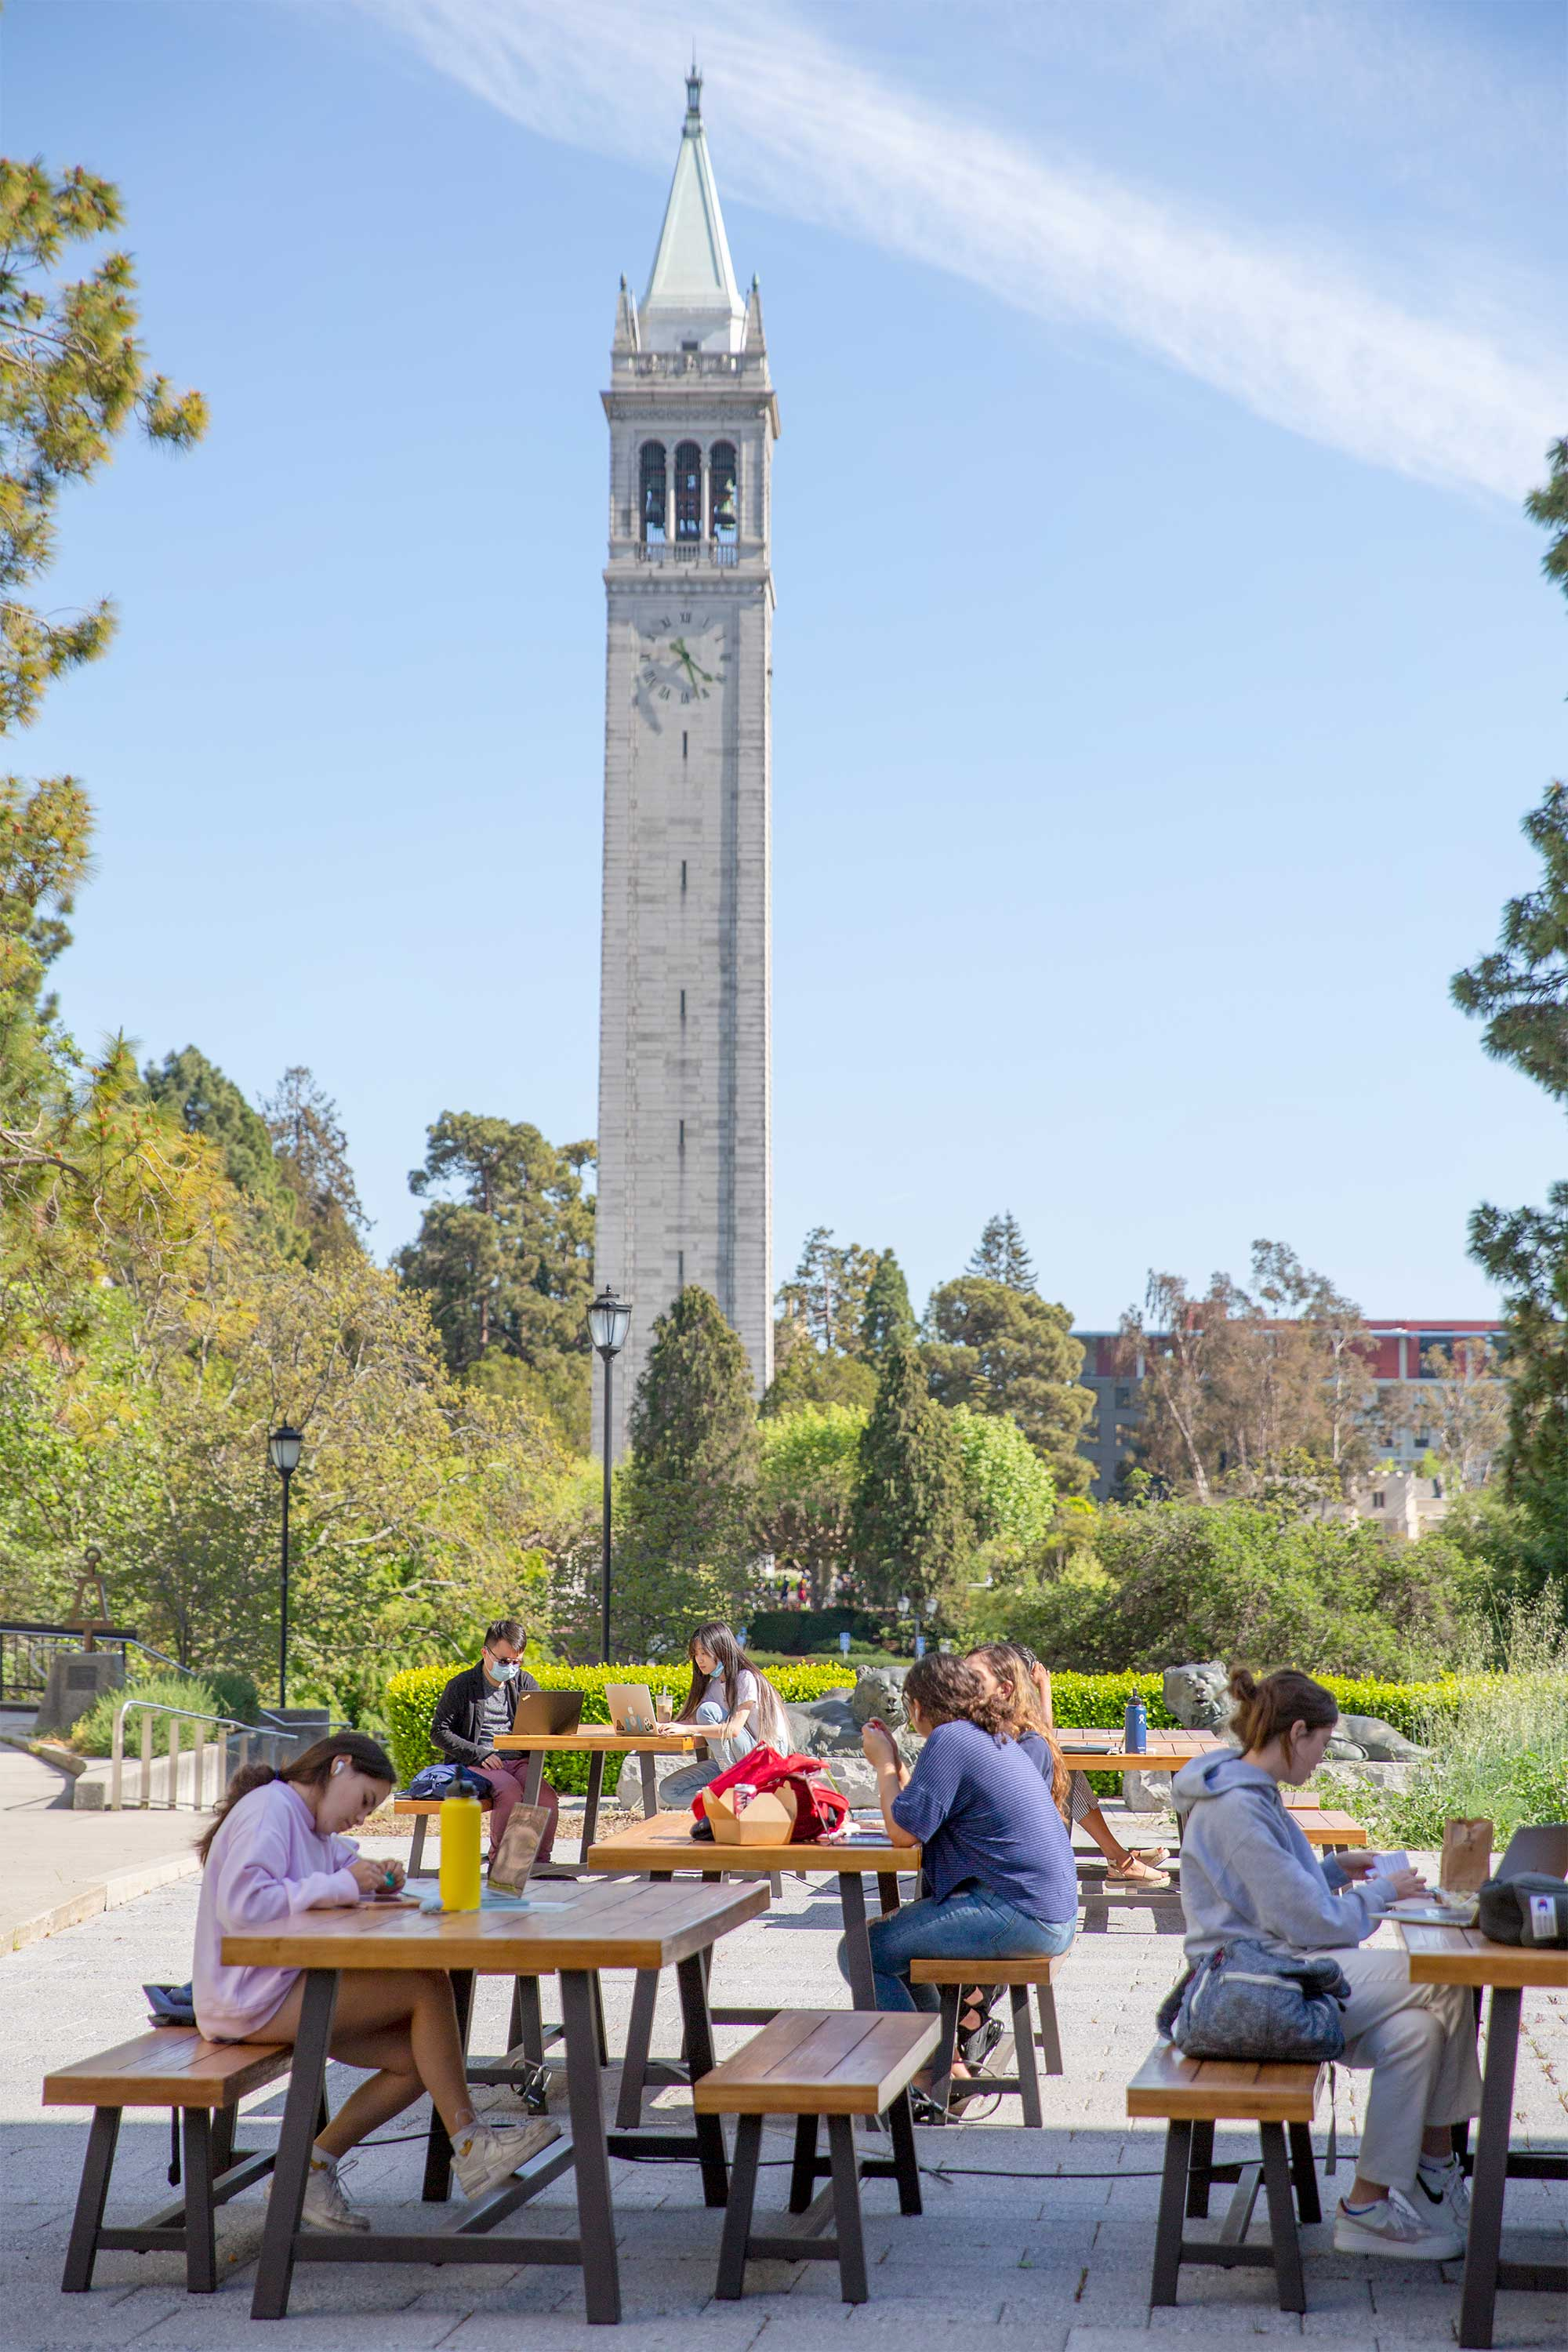 a group of tables with students sitting on them, with the campanile in the background